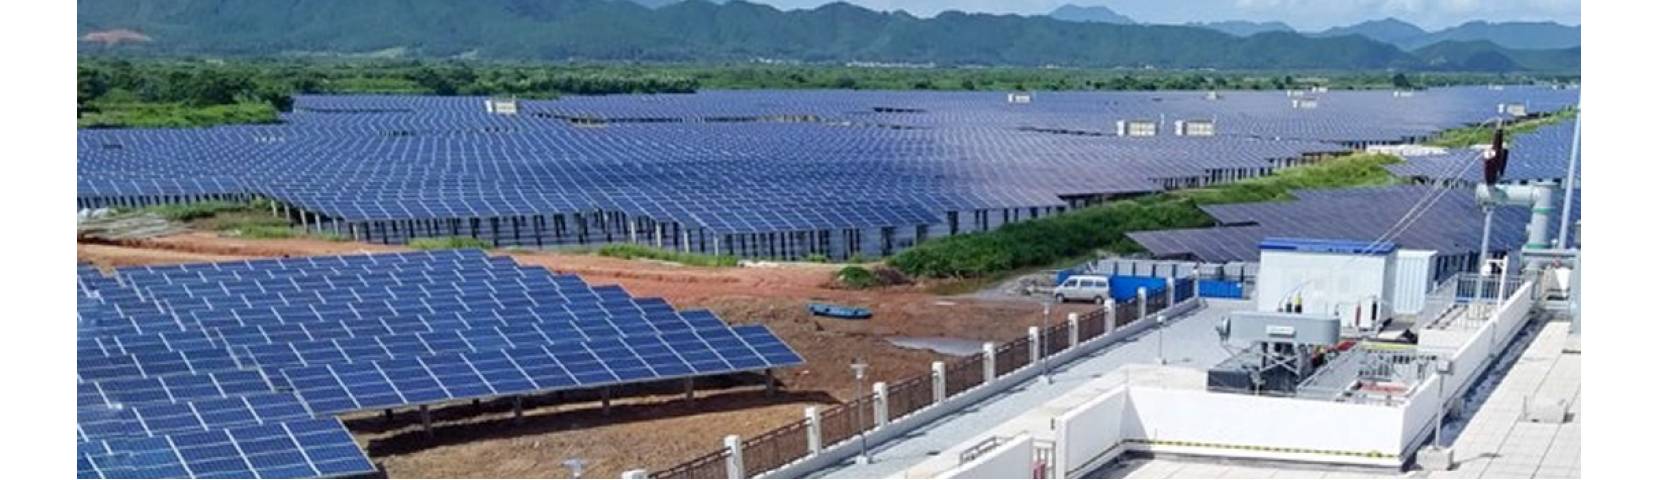 50MW Fishery PV Project of Guangzhou Development Group Incorporated in Taishan, China